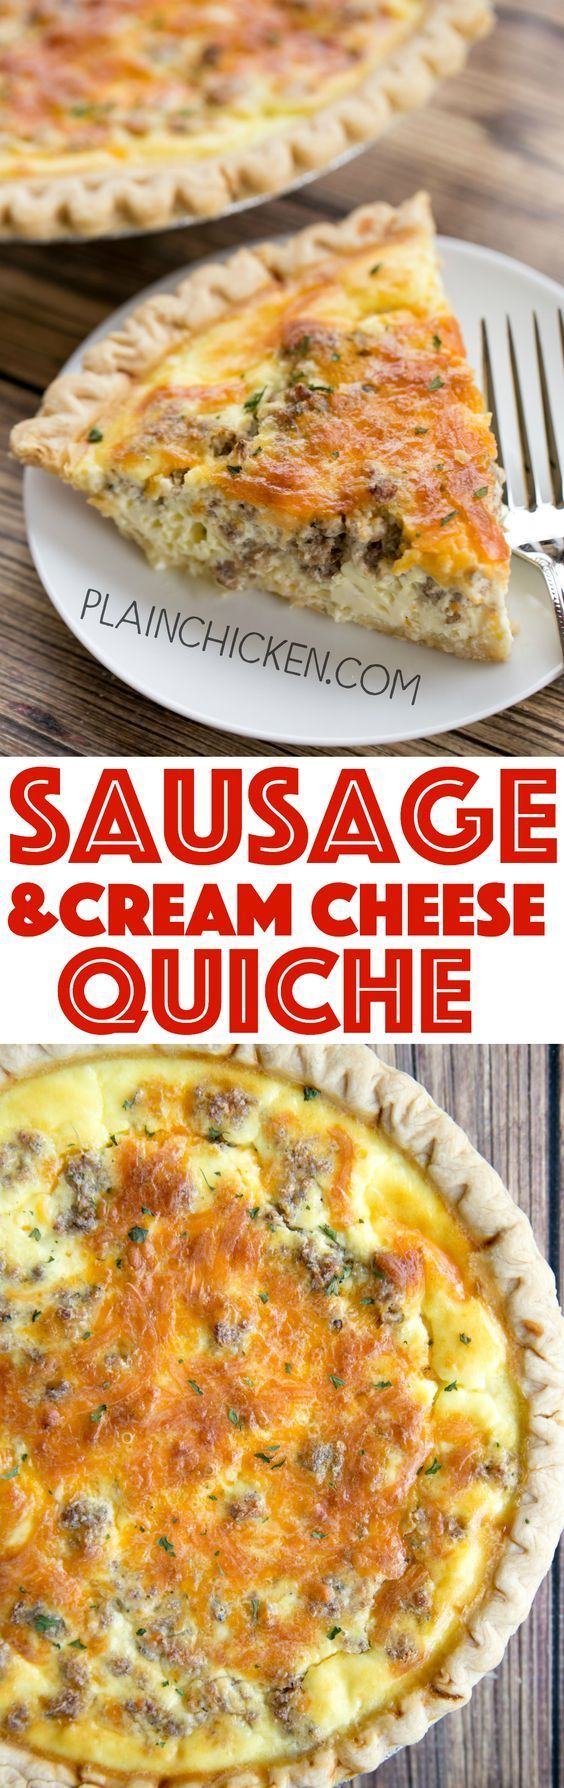 Sausage and Cream Cheese Quiche - so quick and easy. Everyone LOVED this recipe!! Can make ahead and freeze for later. Pie crust, sausage, cream cheese, cheddar cheese, heavy cream, eggs, sour cream and pepper. Ready to eat in an hour. Great for breakfast, lunch or dinner. THE BEST!